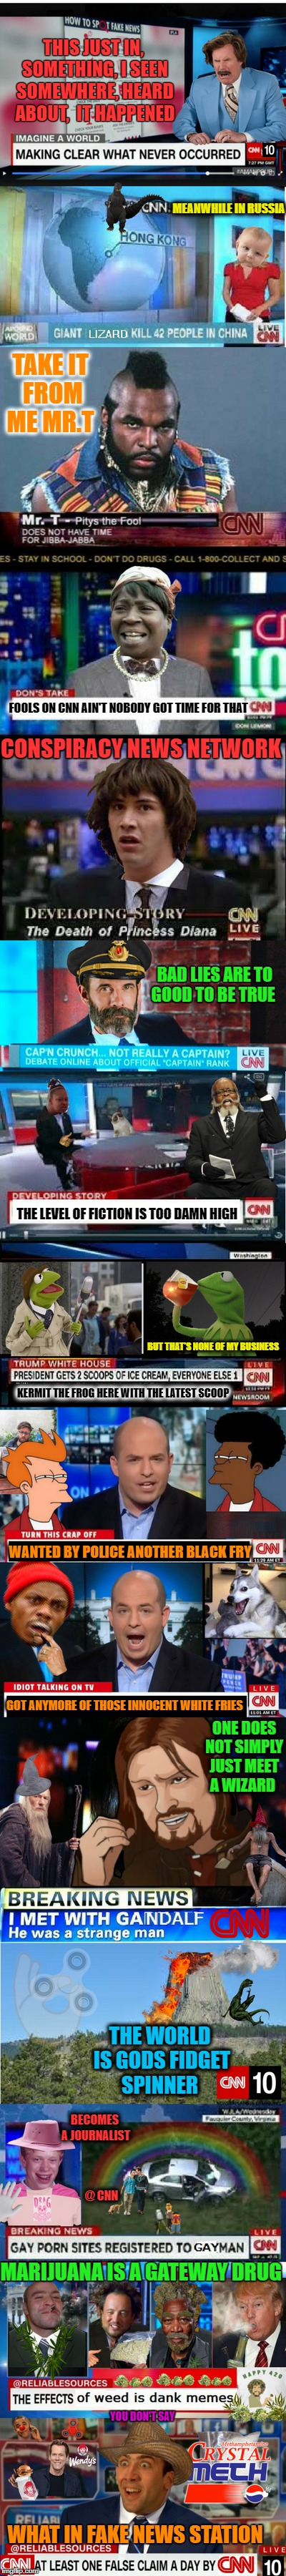 "CNN: ""Took me forever to make up all this truth""  